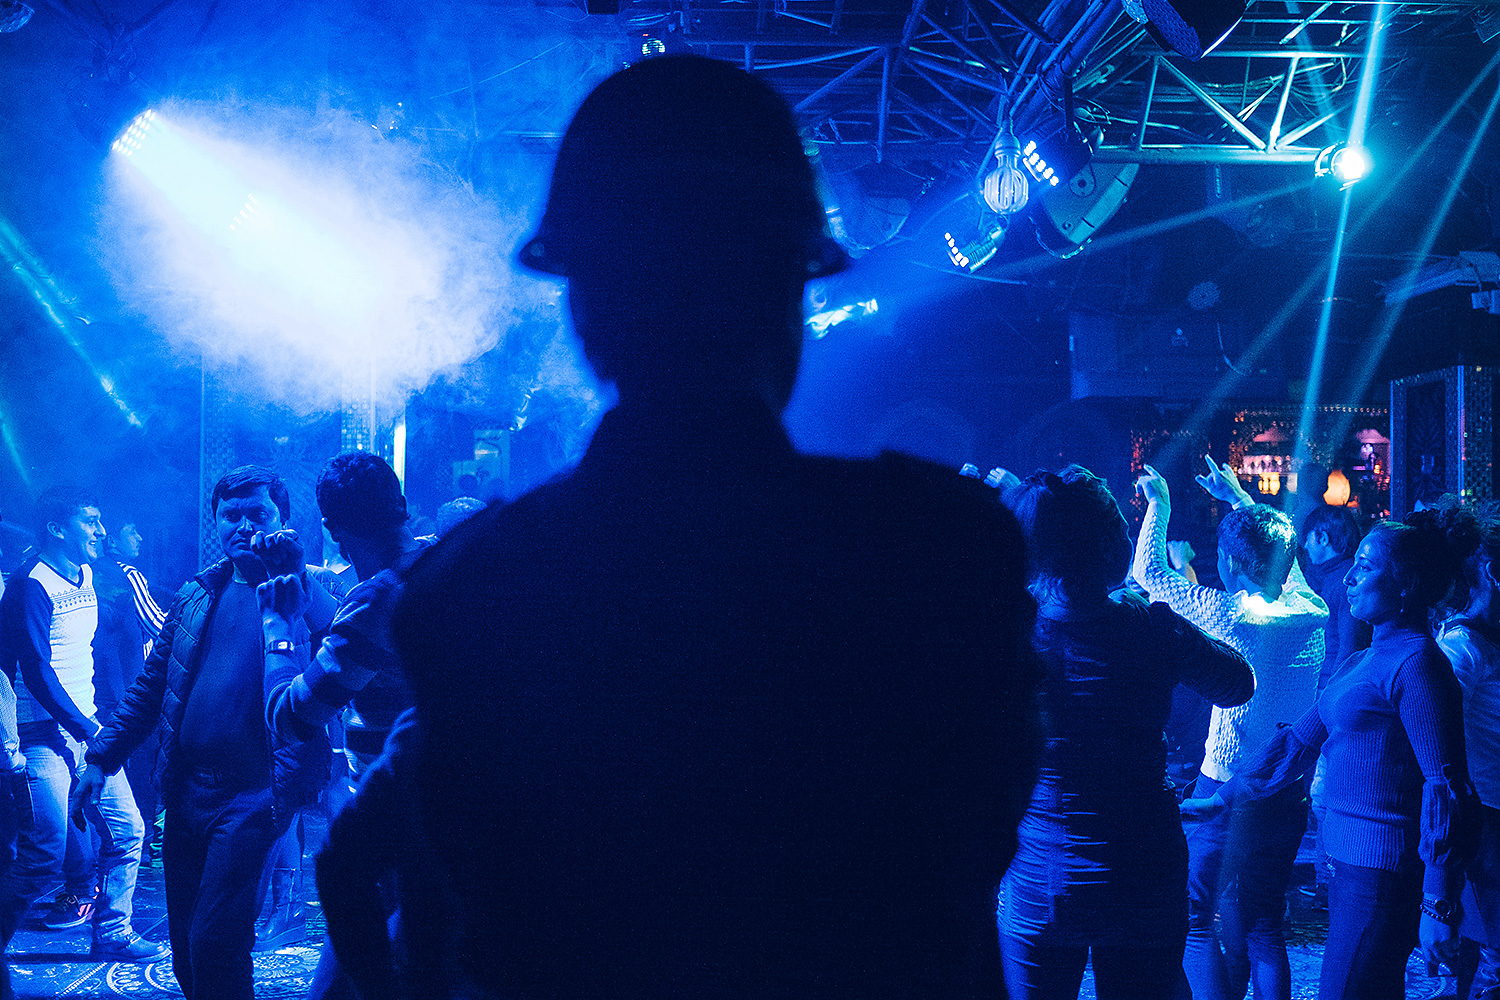 Revelers dance under the surveillance of security guards after midnight at a local club.